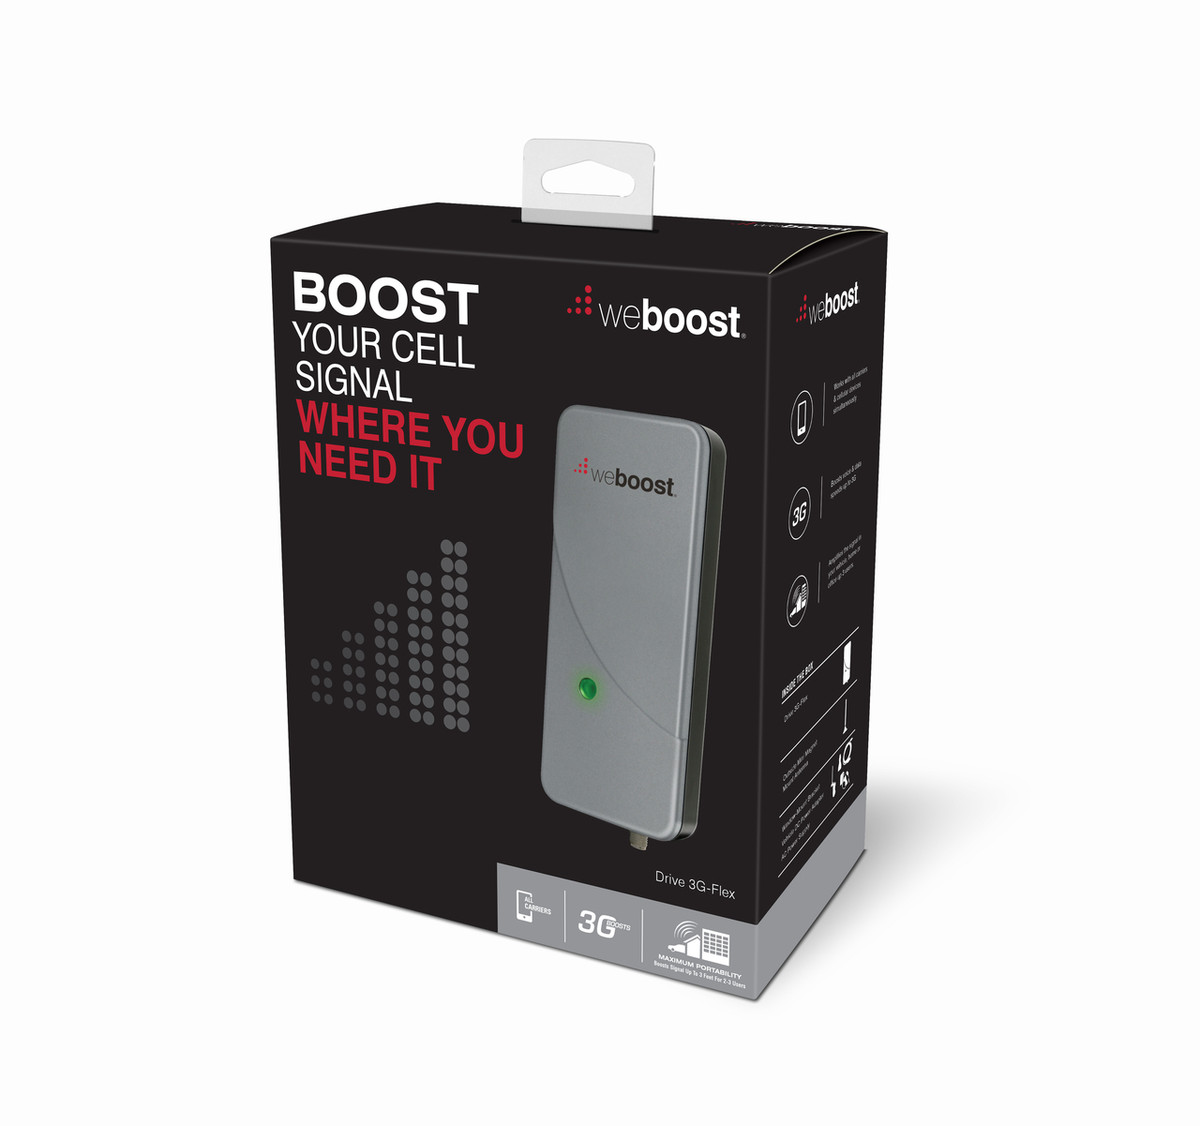 weBoost Drive 3G-Flex Cell Phone Signal Booster | 470113 Box View